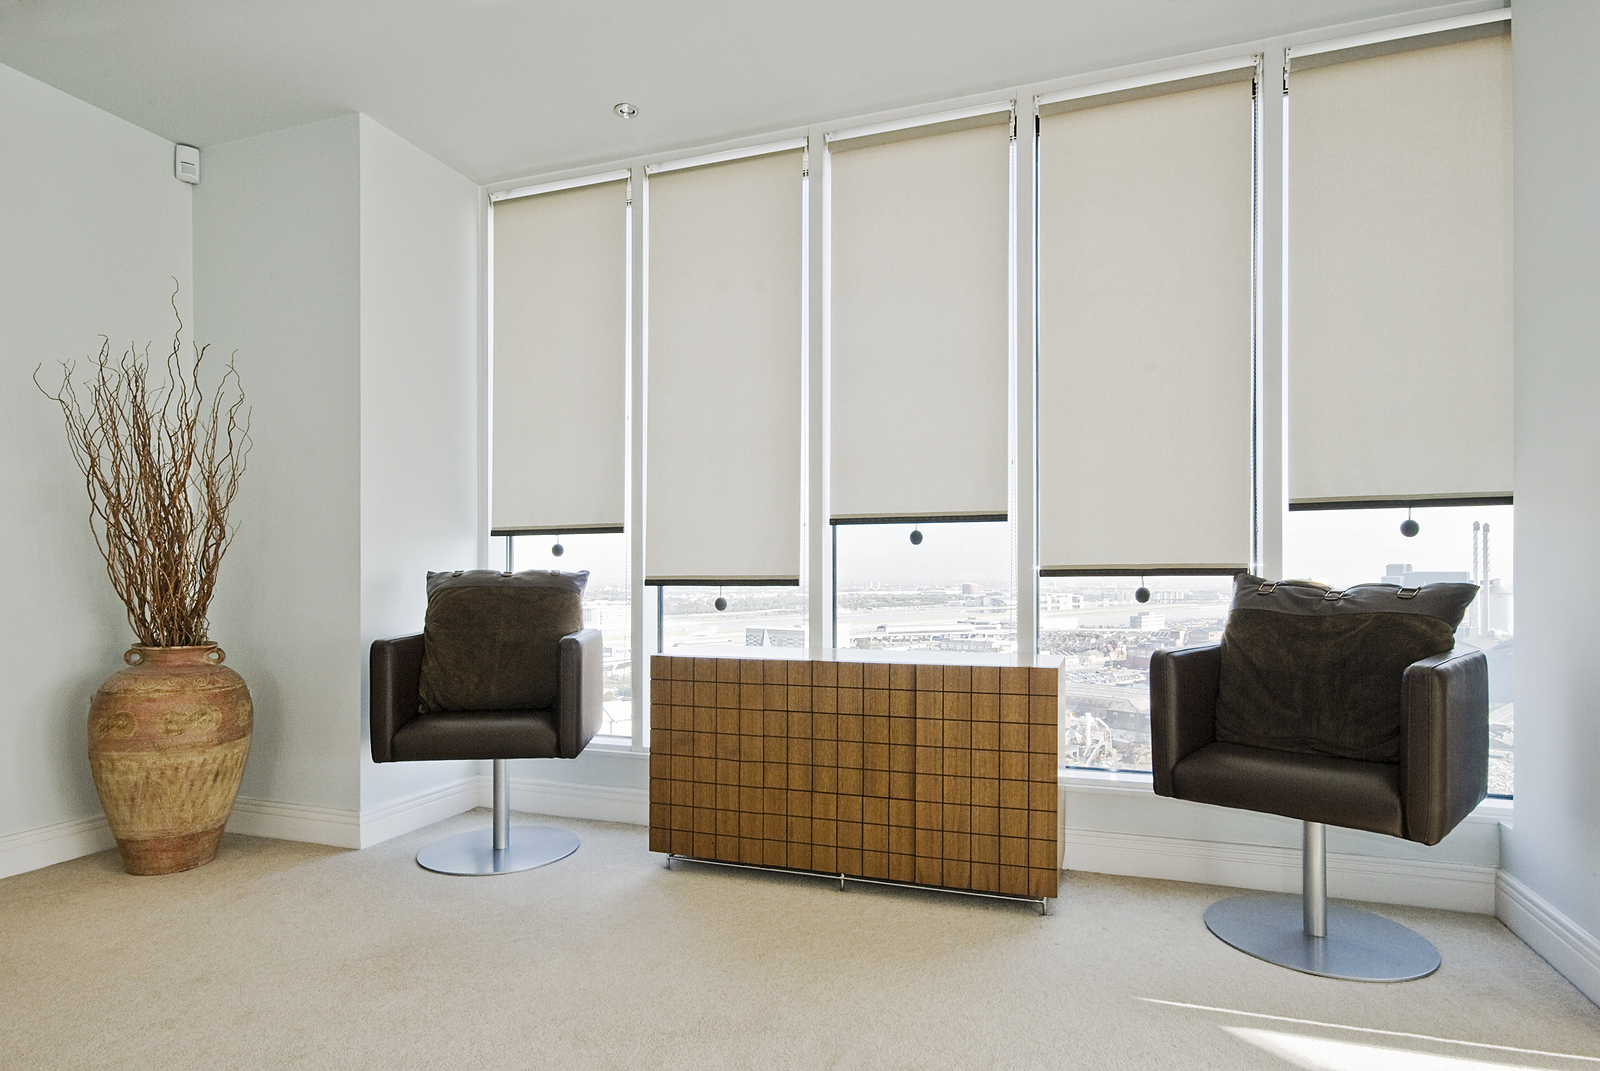 Vertical Blinds Ideas for Window Treatment - Pictures and Design